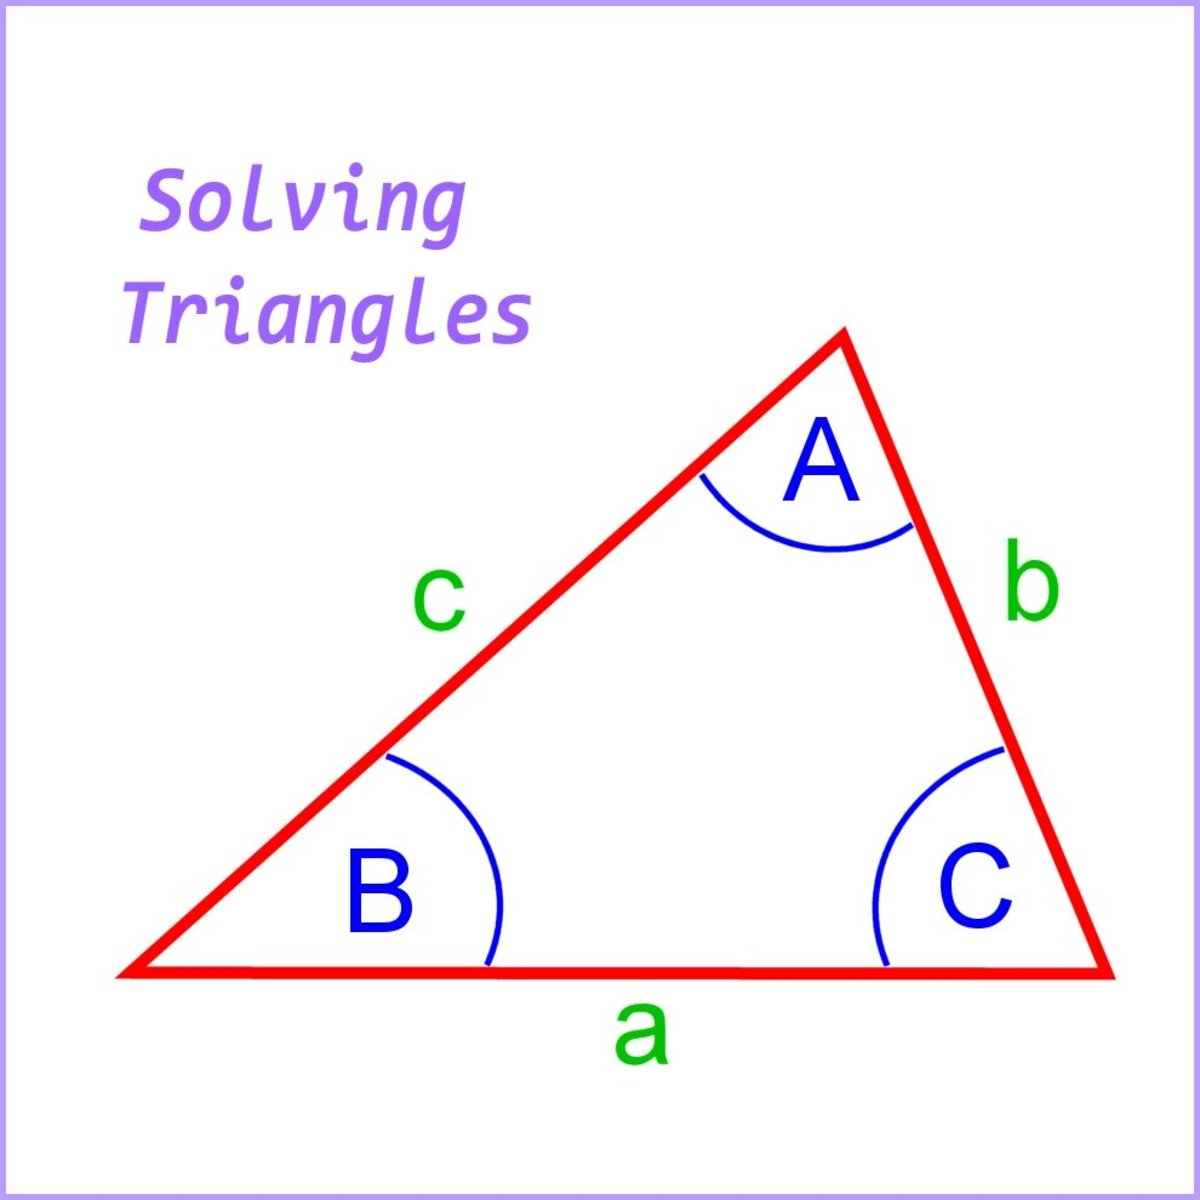 Solving triangles